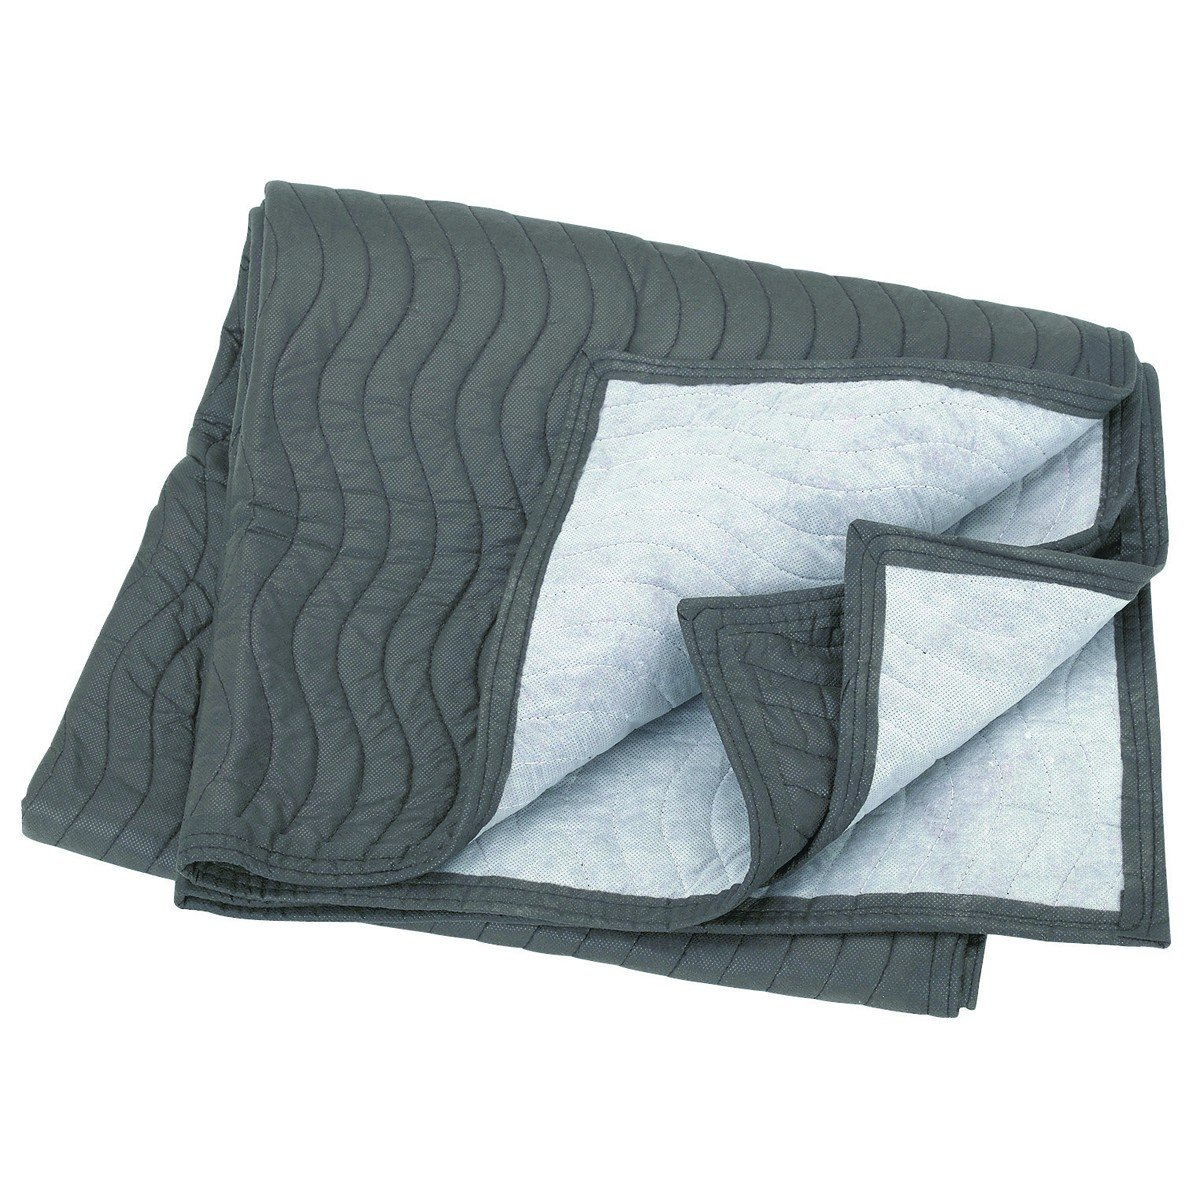 40 in. x 72 in. Moving Blanket HFJ14 Haul-Master